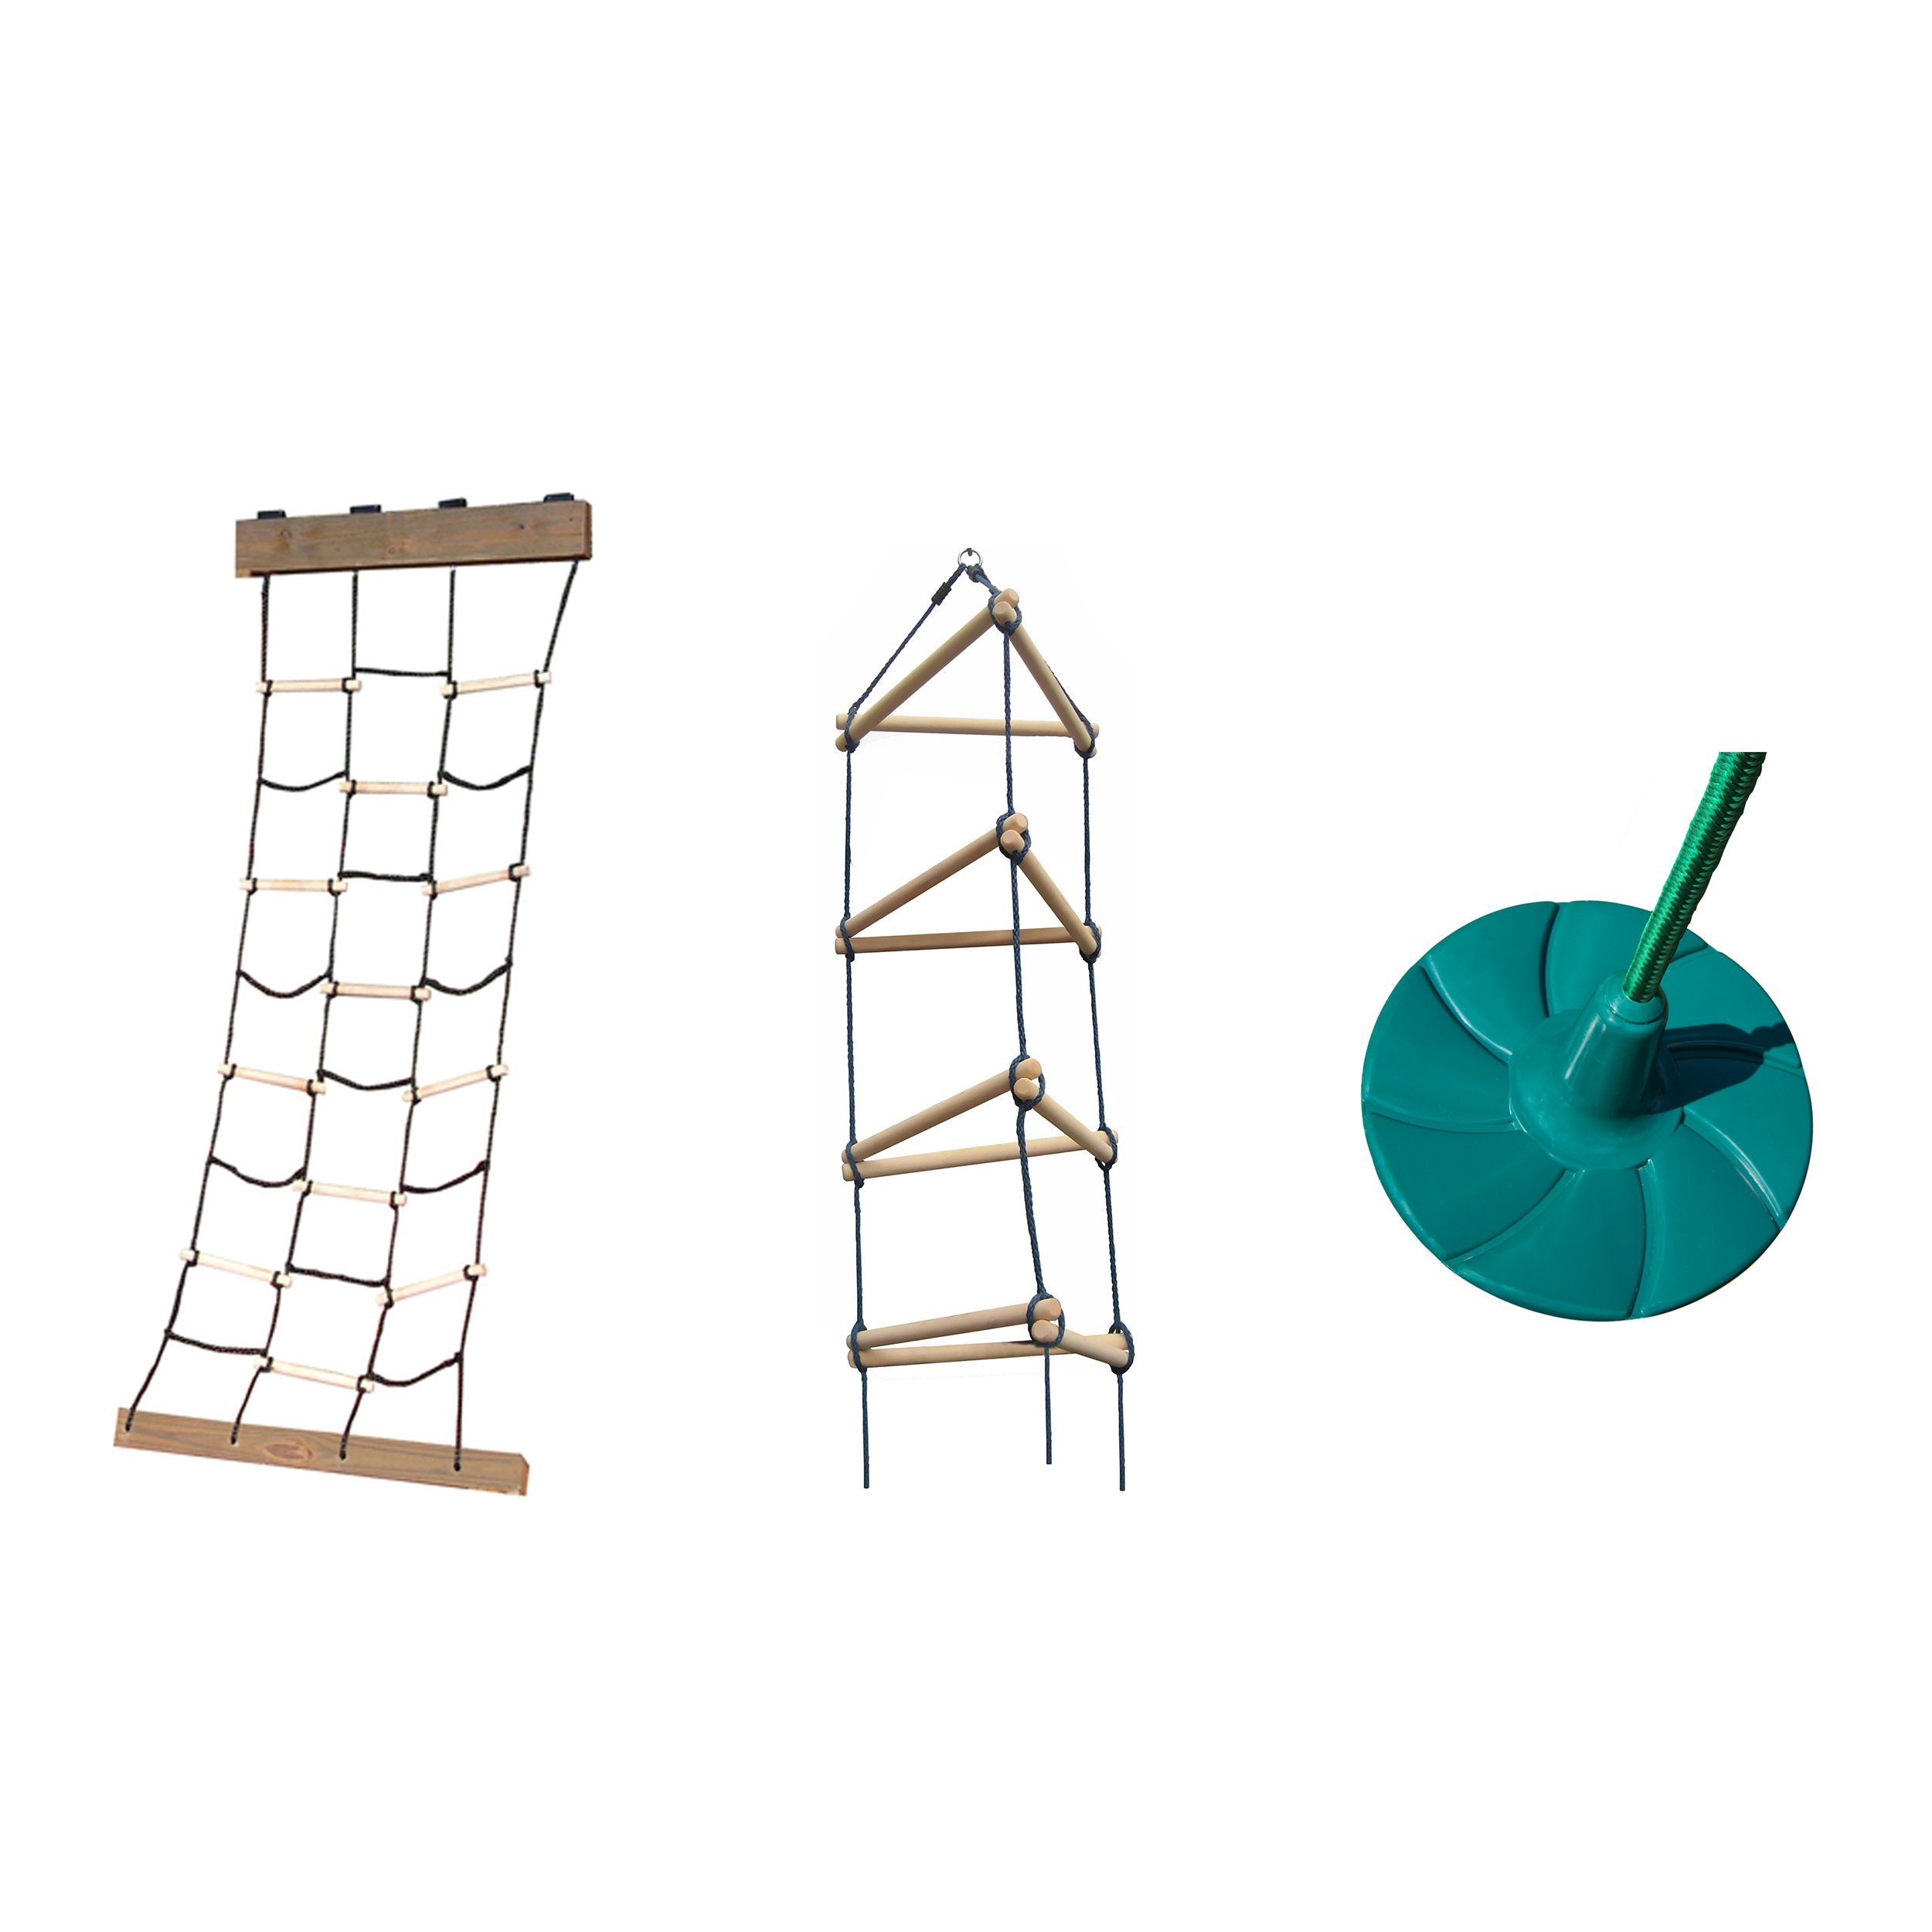 Cargo Climbing Net, Triangle Rope Ladder and Disc Swing Bundle - Includes Climbing Accessories and Disc Swing for Outdoor Swing Sets, Backyard Play Sets, etc. by Swing-N-Slide